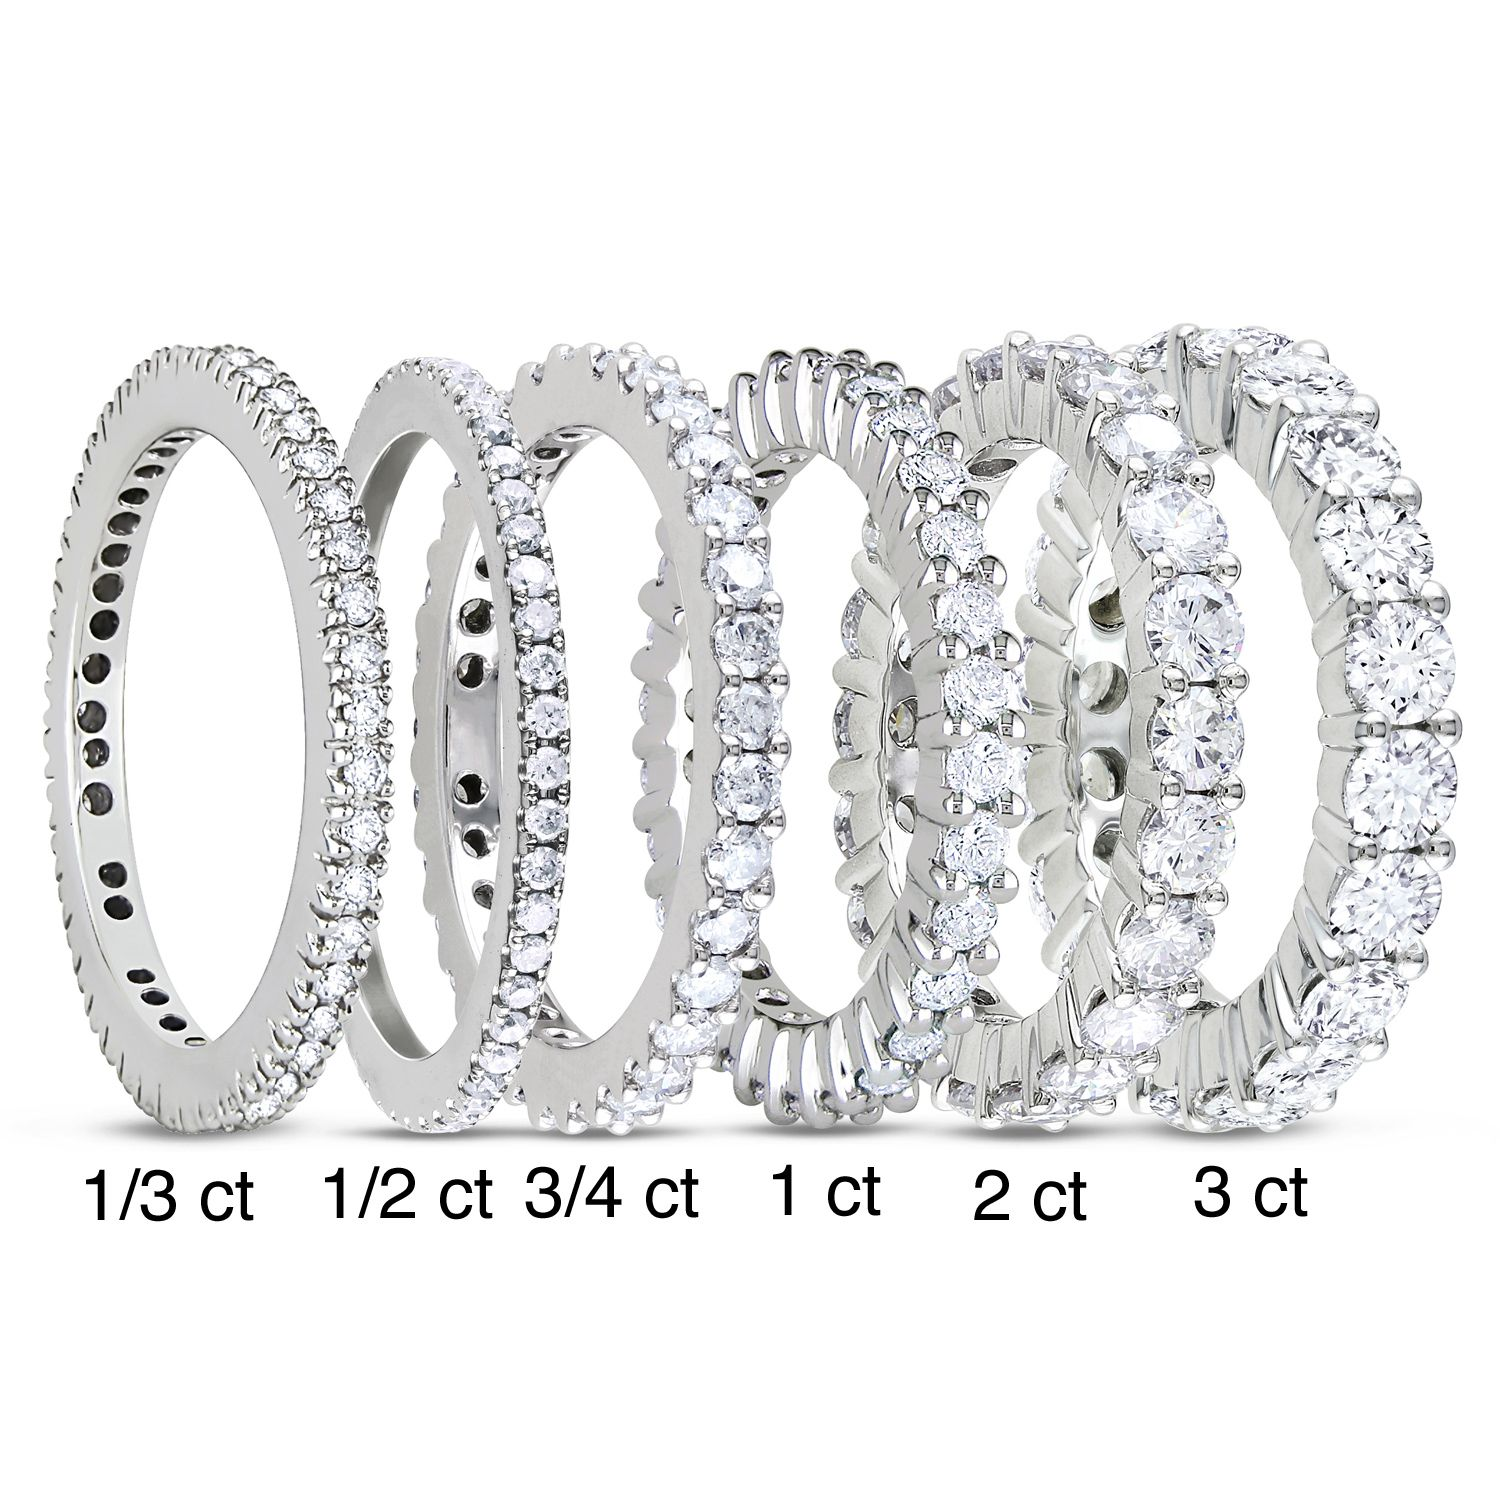 band jewelry wise anniversary bands article occasions gifts my replace wedding will